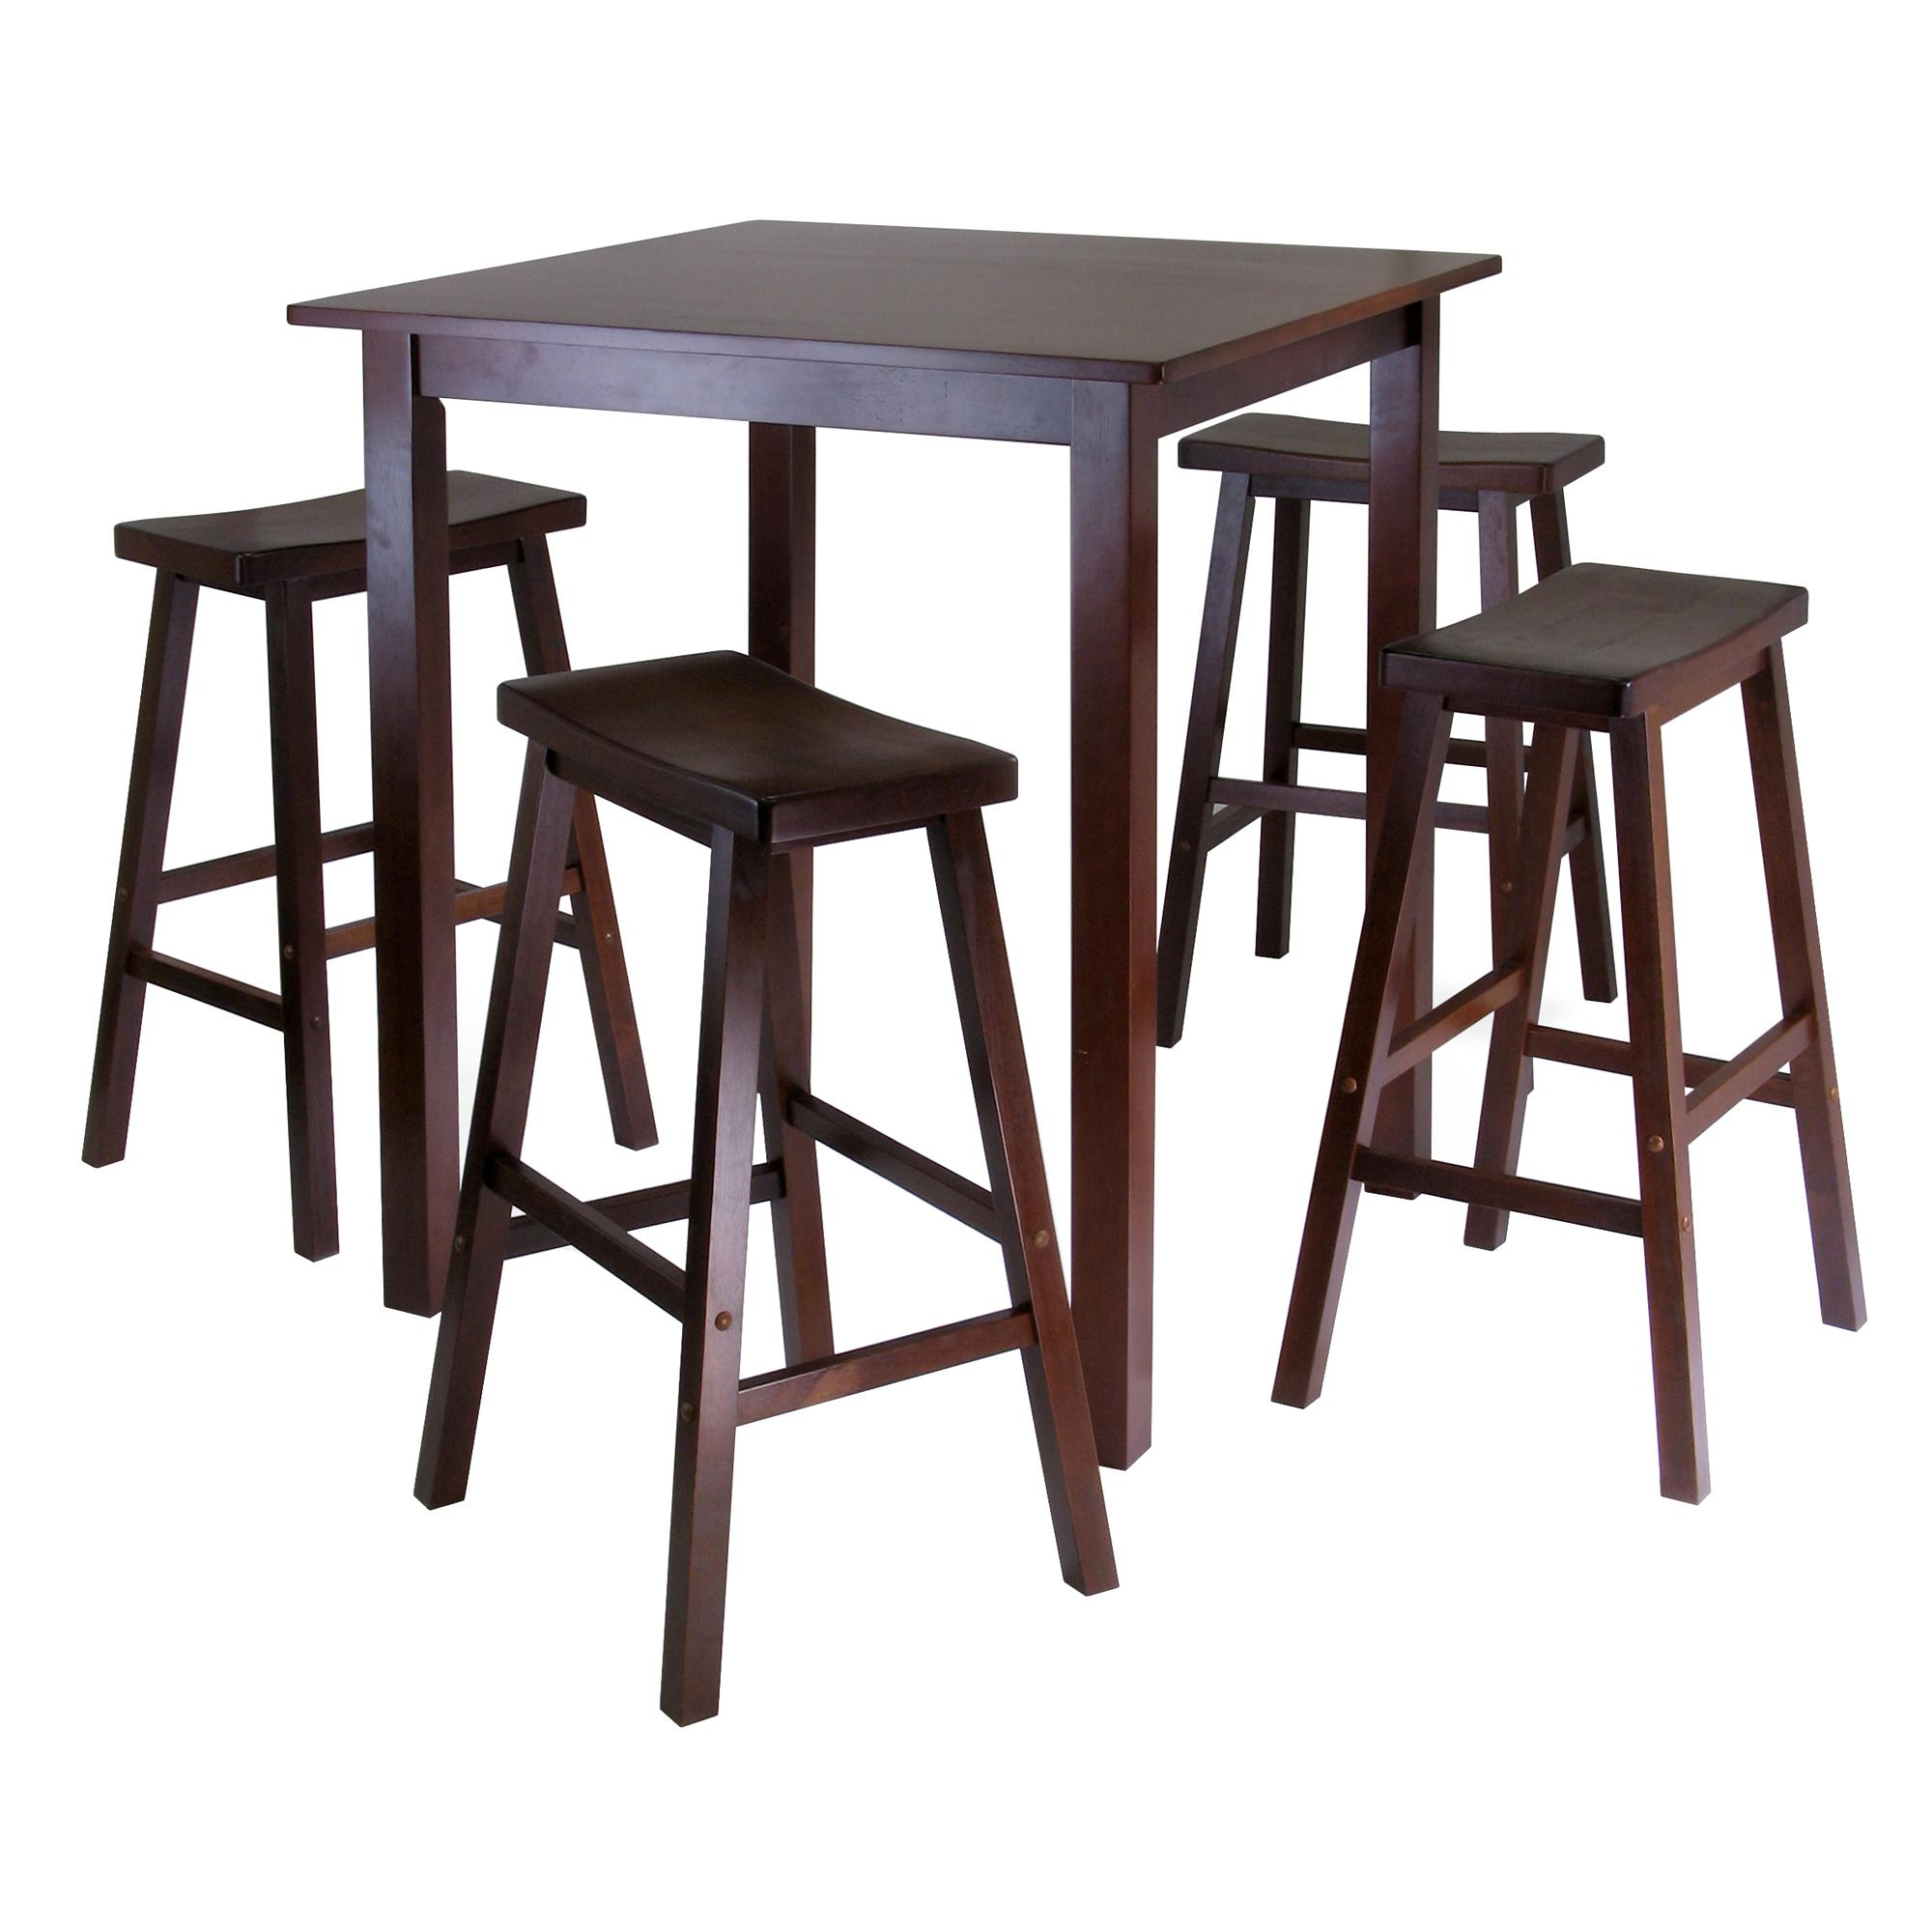 Winsome Wood Parkland 5-Piece Square High/Pub Table Set in Antique ...